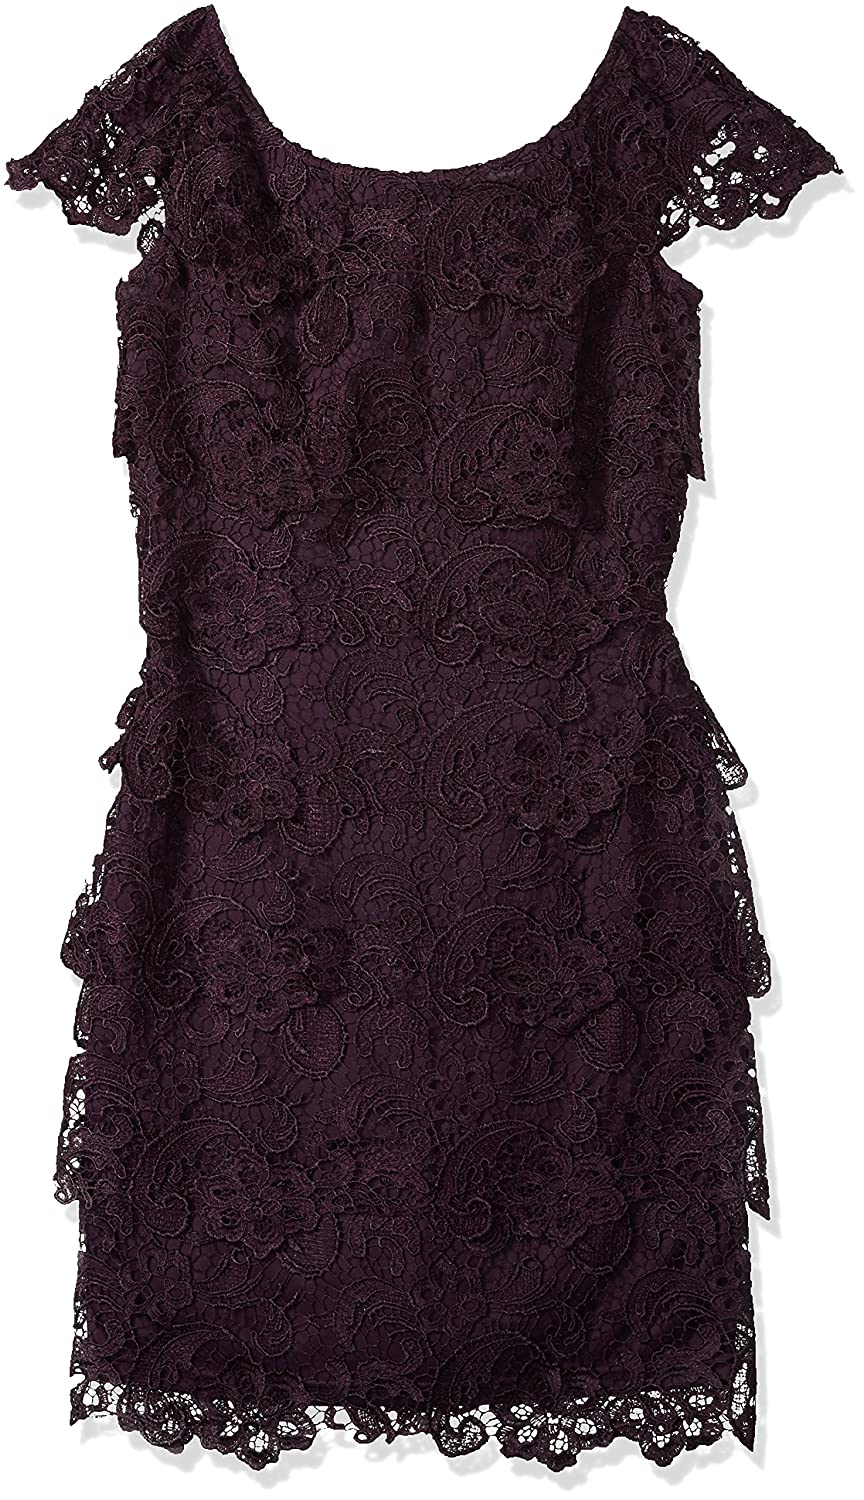 Eggplant Emma Street Womens Lace Tiered Short Dress with Cap Sleeve Dress